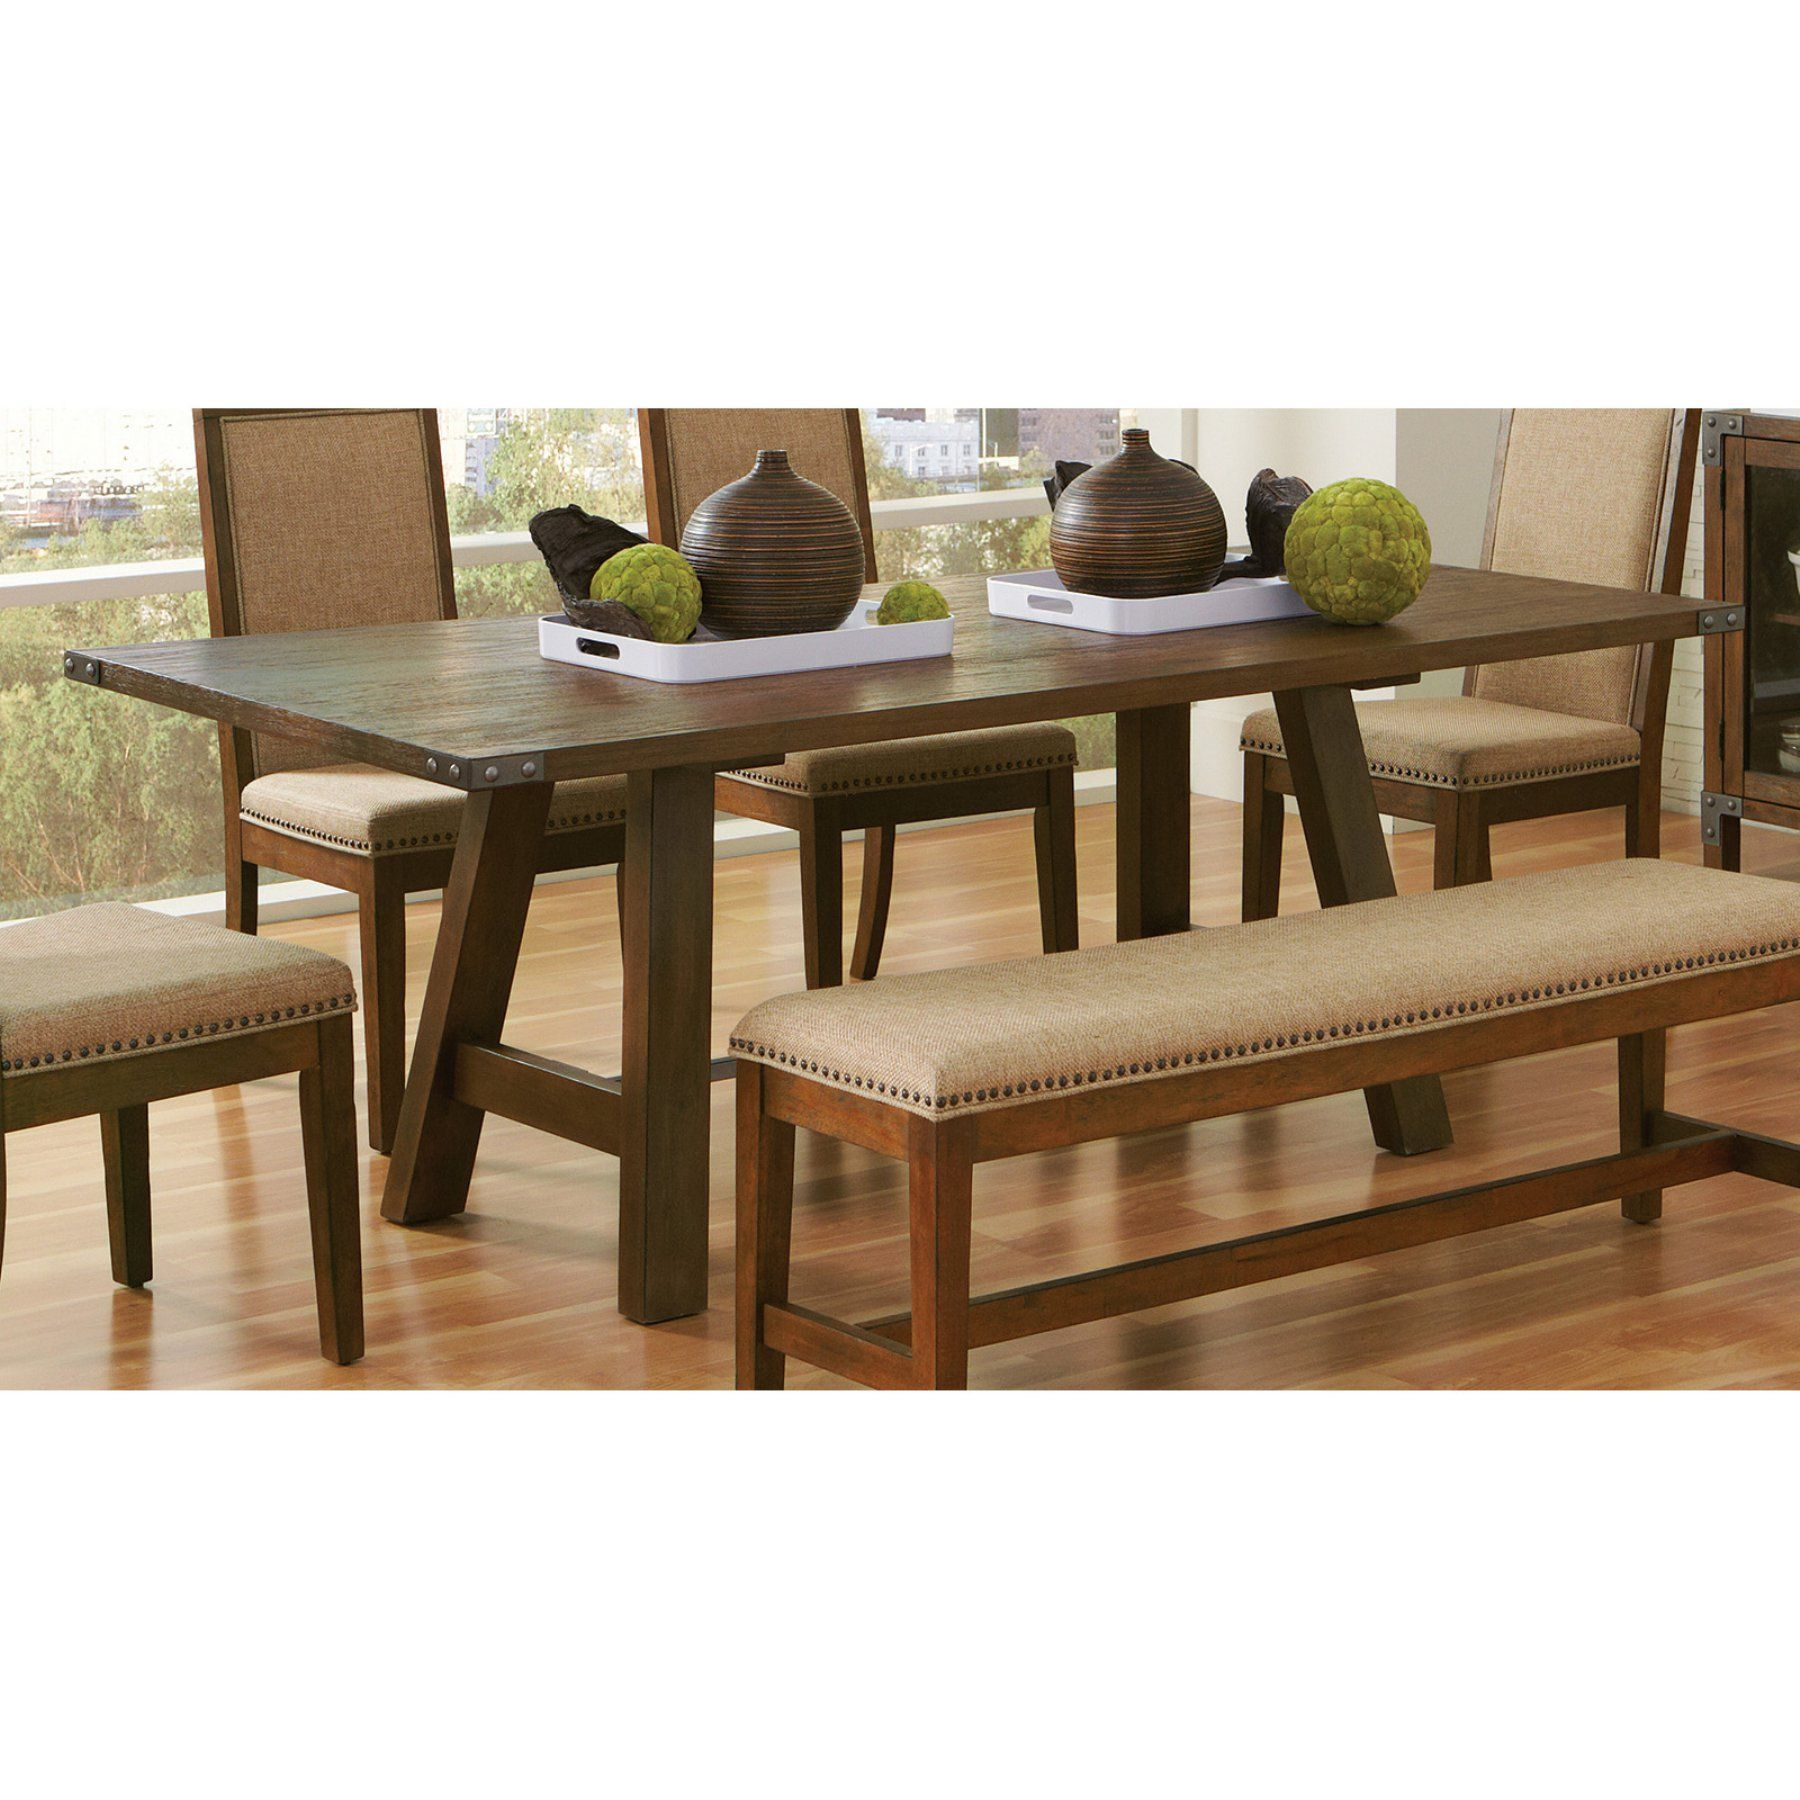 Excellent Coaster Furniture Arcadia Dining Table 105681 Products Ncnpc Chair Design For Home Ncnpcorg